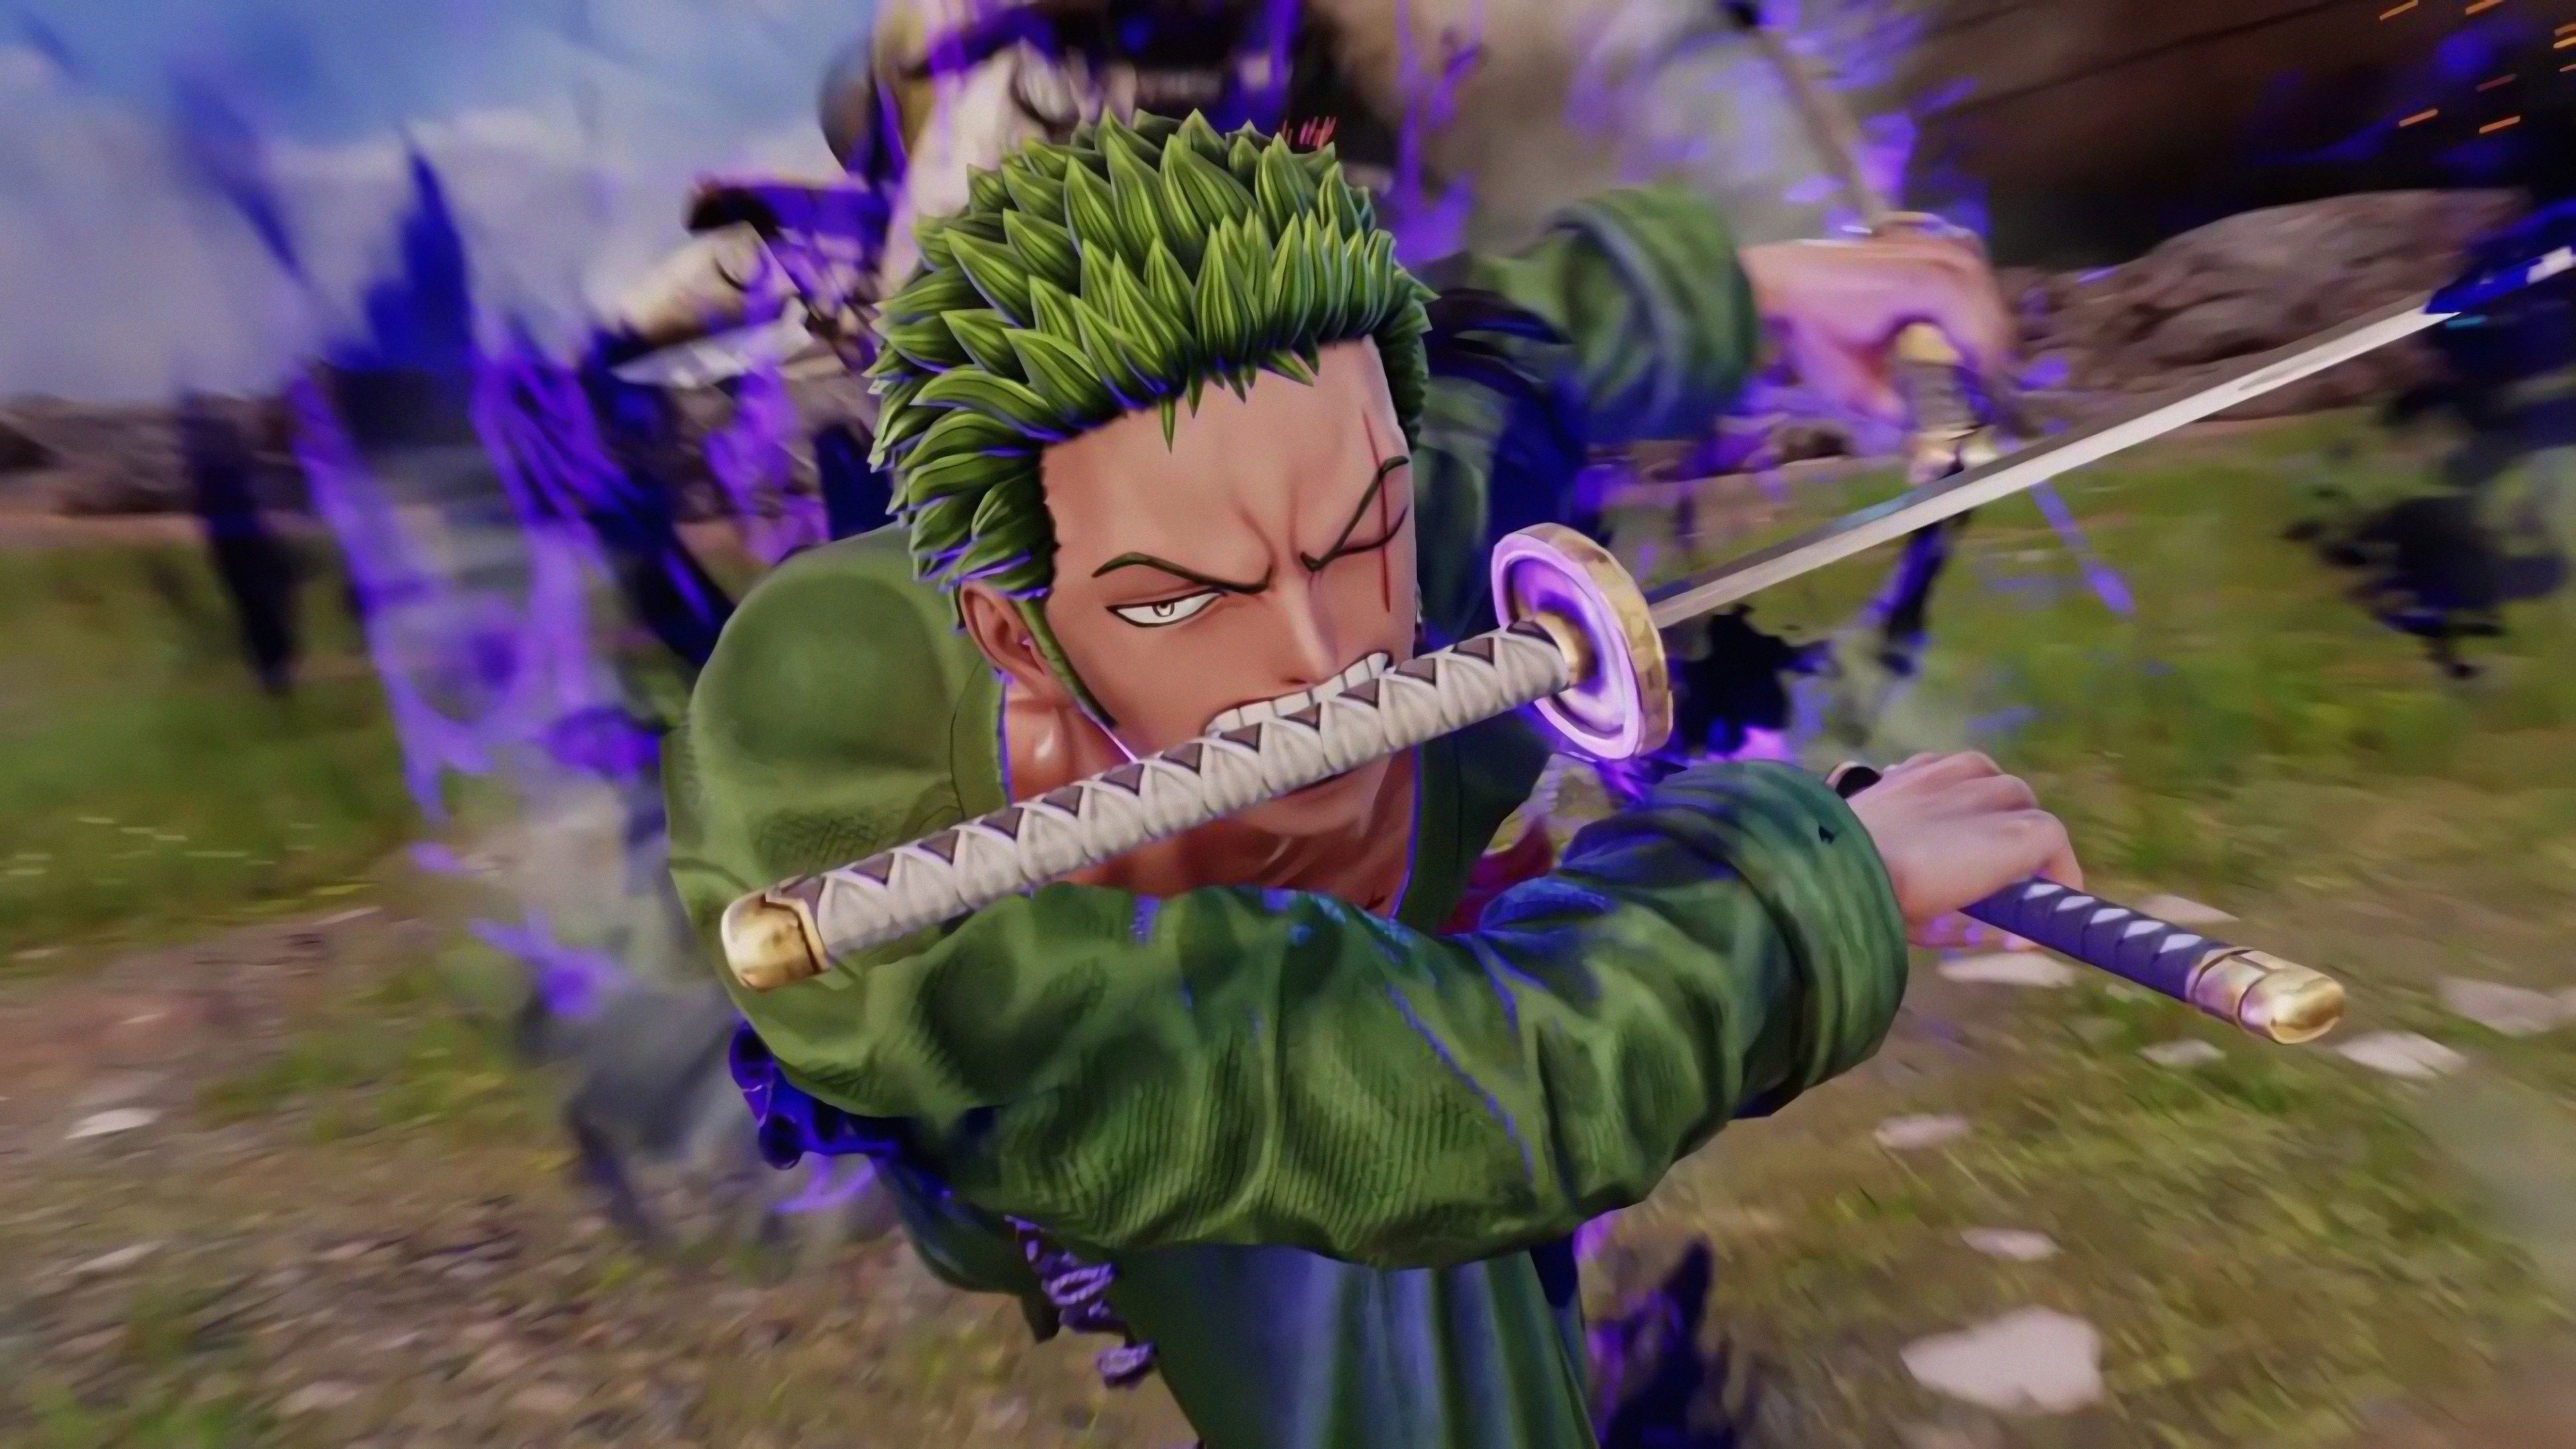 Download 3840x2160 Wallpaper Jump Force Roronoa Zoro Video Game One Piece Anime 4k Uhd 16 9 Widescreen 3840x2160 Hd Image Background 19059